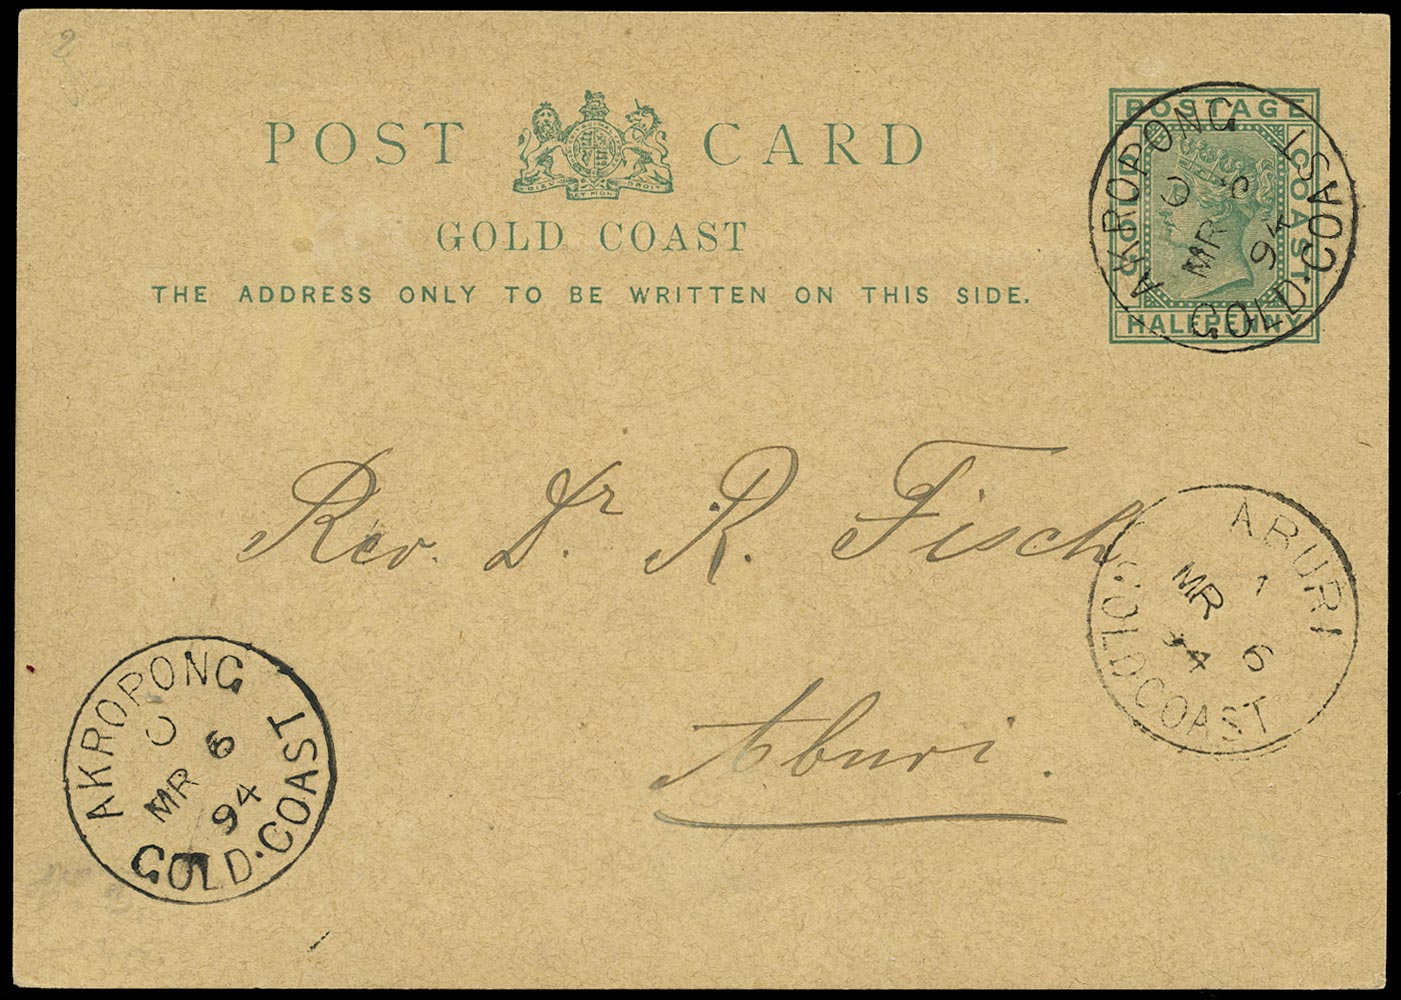 GOLD COAST 1894 Cover QV ½d green postcard from Akropong to Aburi